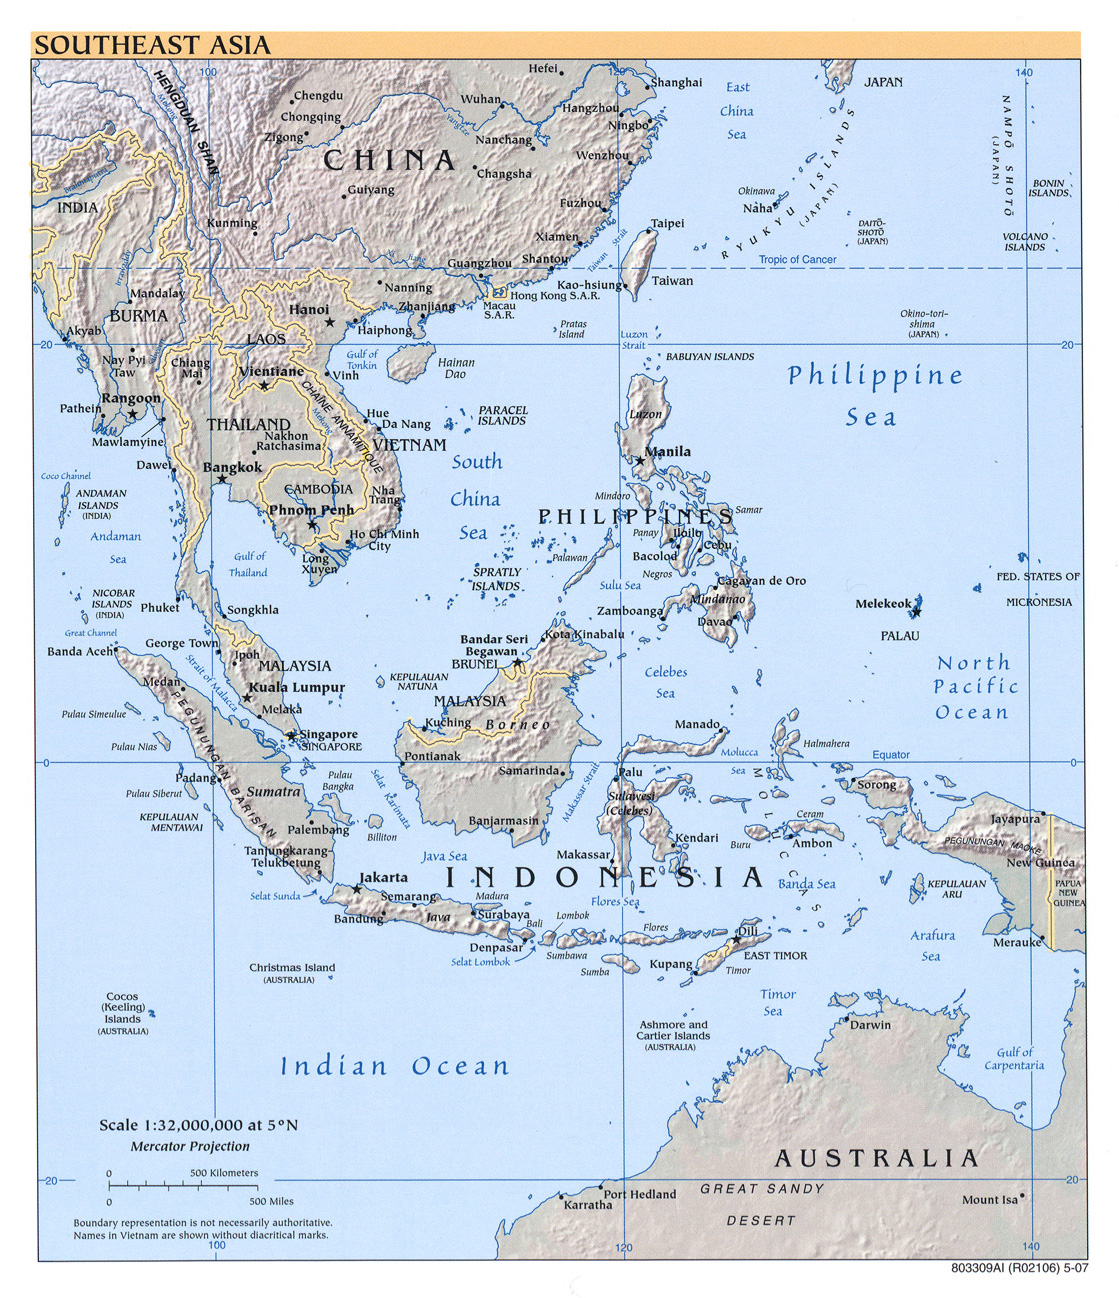 Southeast Asia physical map 2007